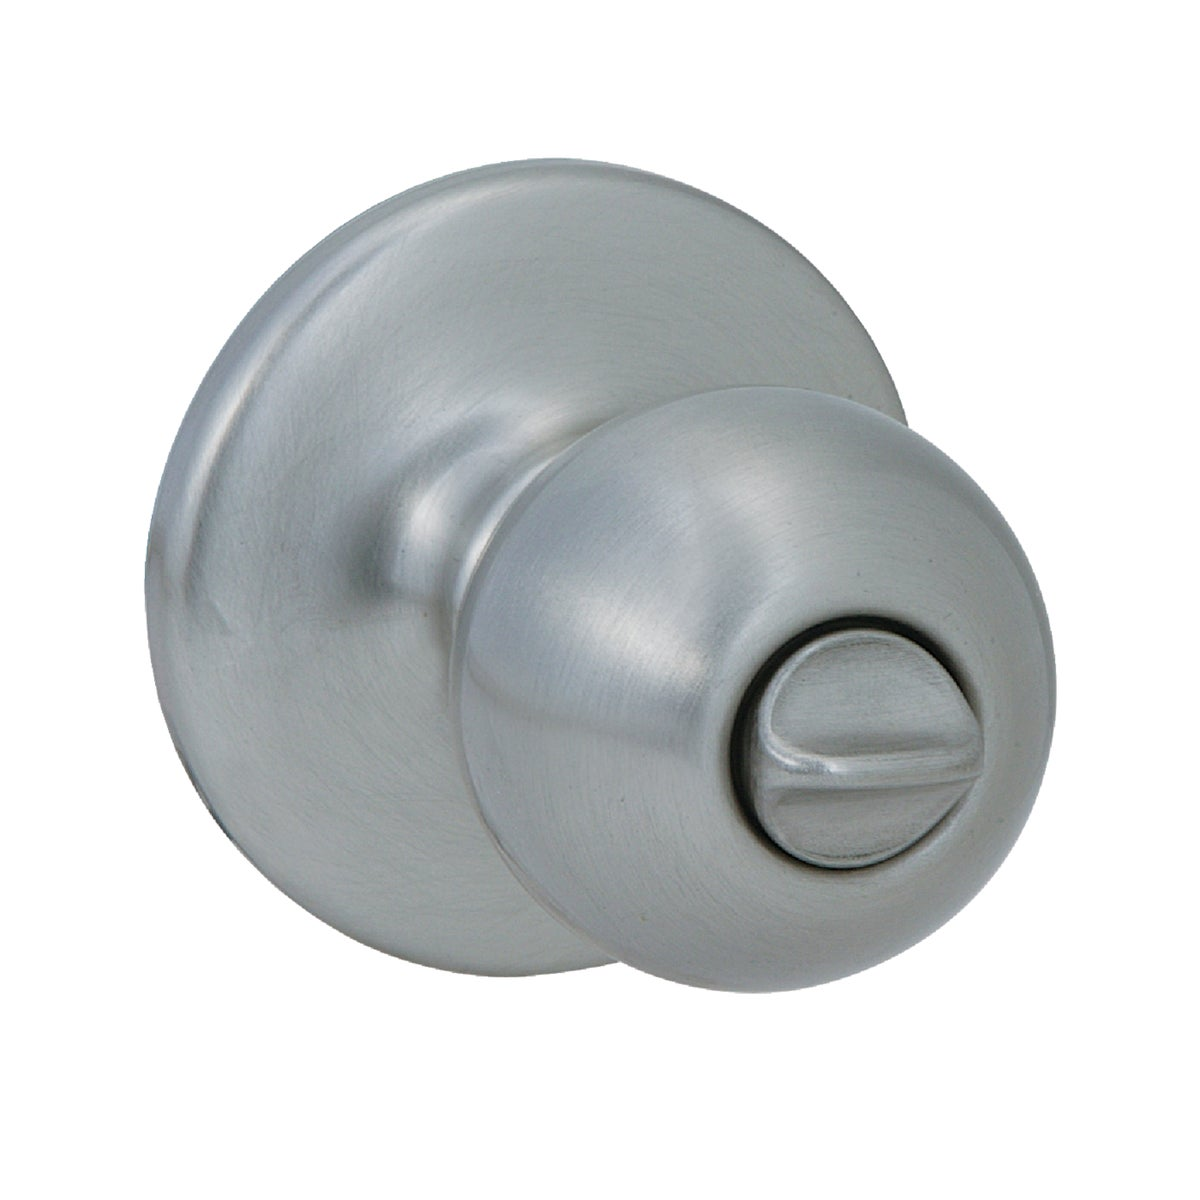 SN CP POLO PRIVACY LOCK - 300P 15 CP by Kwikset